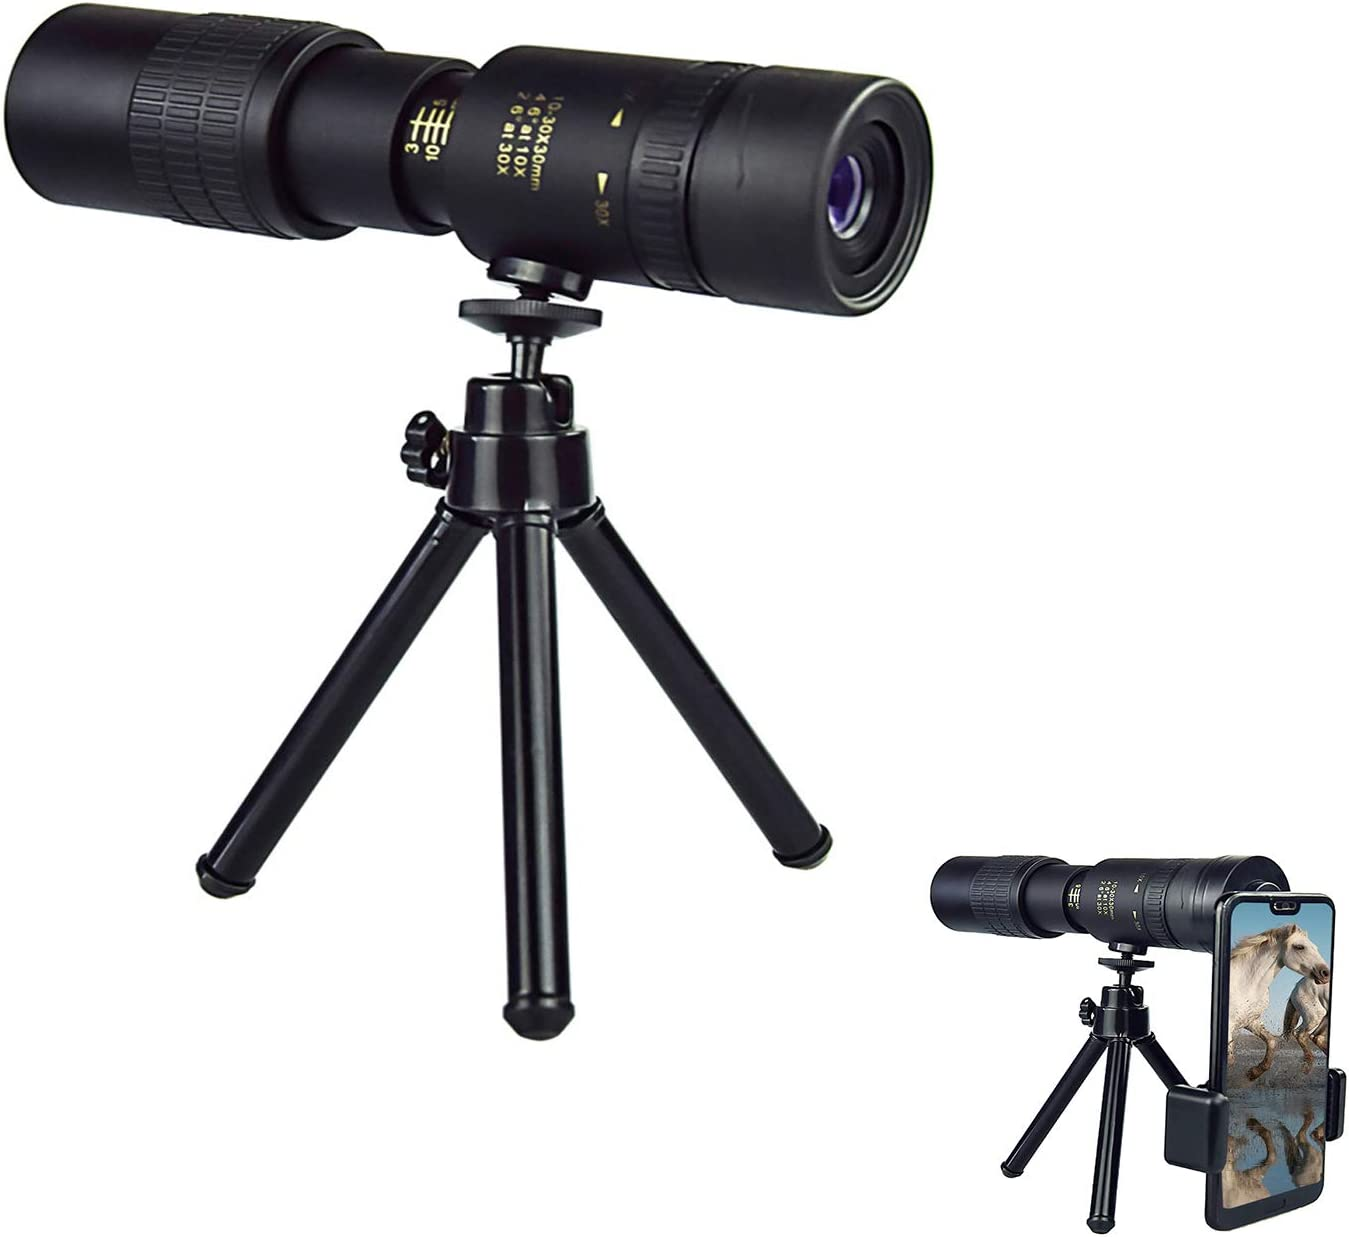 4K 10-300X40mm Super Telephoto Zoom Monocular Telescope with Smartphone Holder and Tripod for Beach Travel Bird Watching Camping